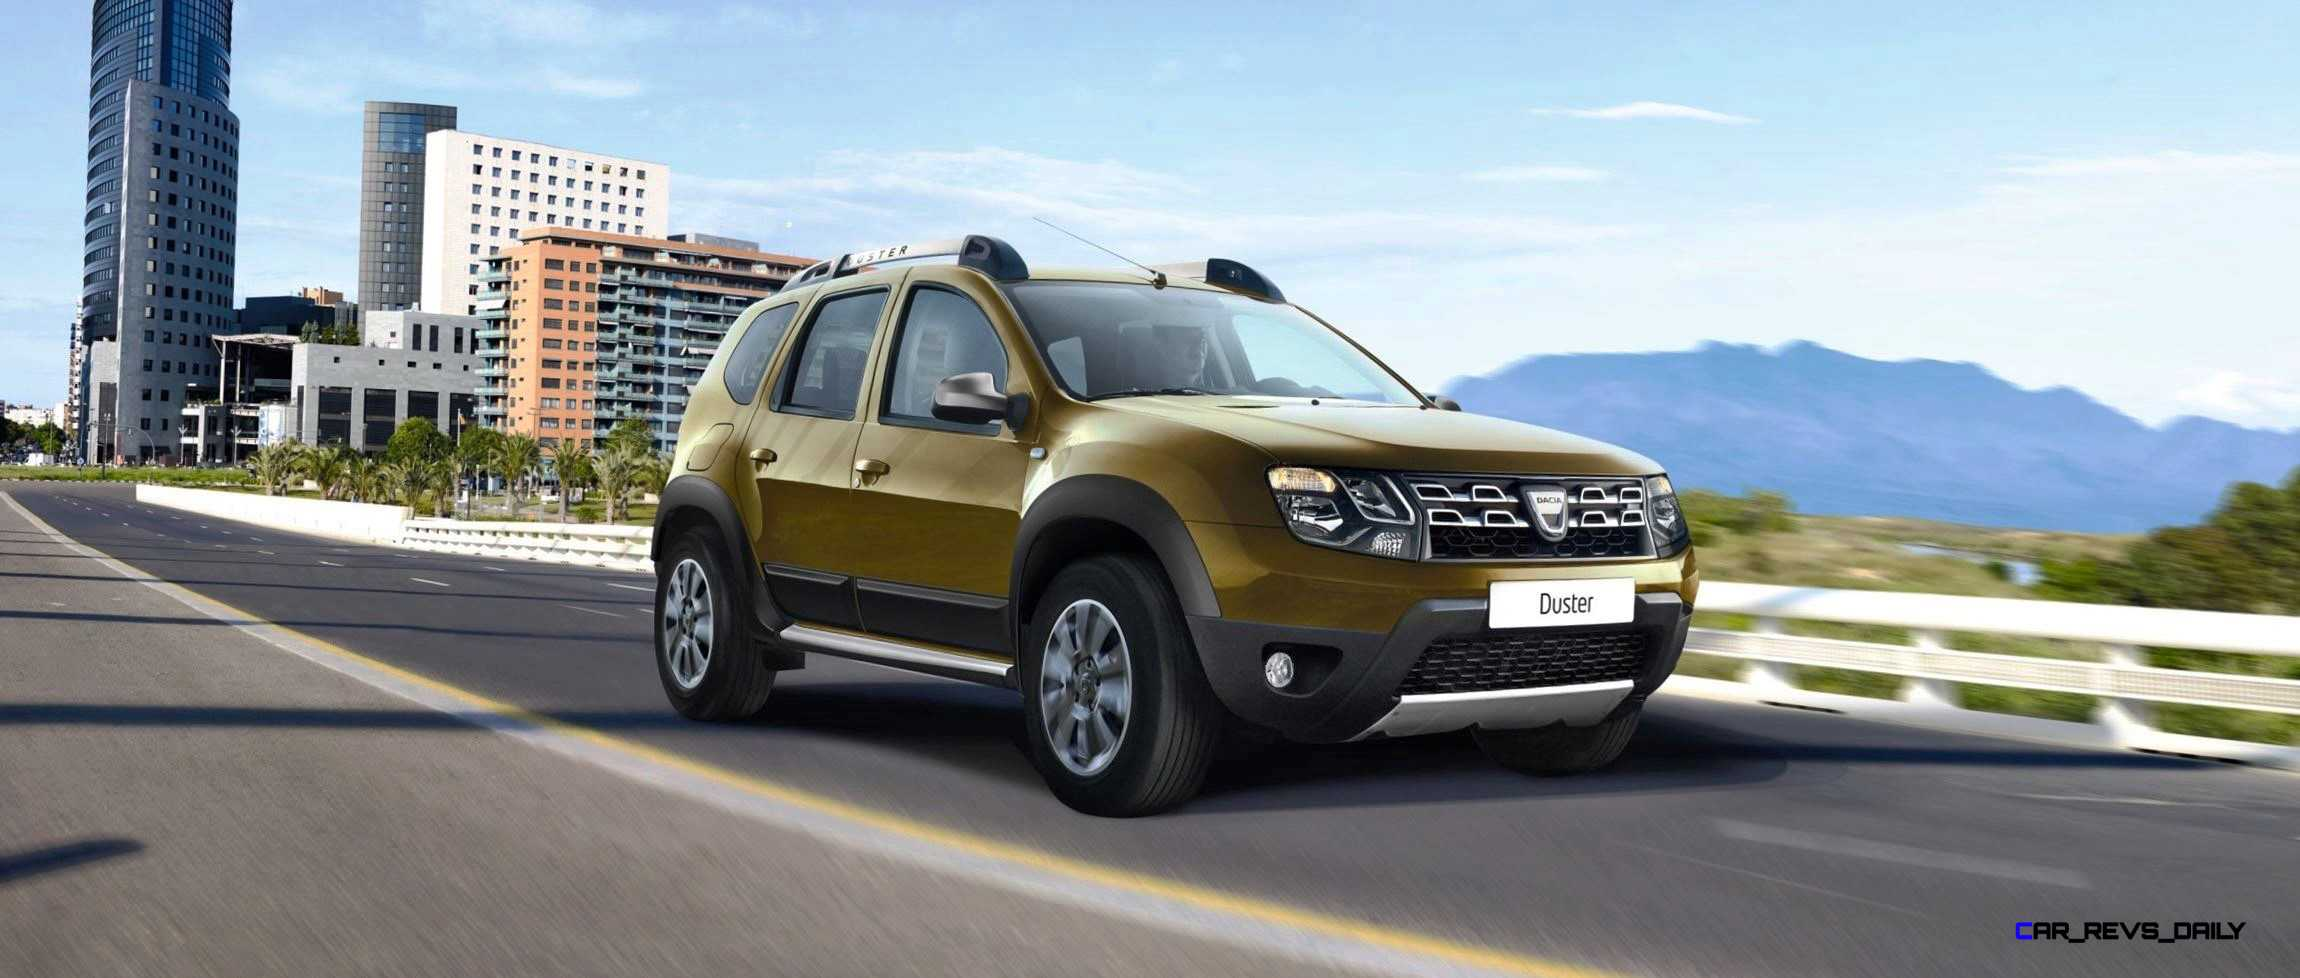 2016 dacia duster car photos catalog 2018. Black Bedroom Furniture Sets. Home Design Ideas